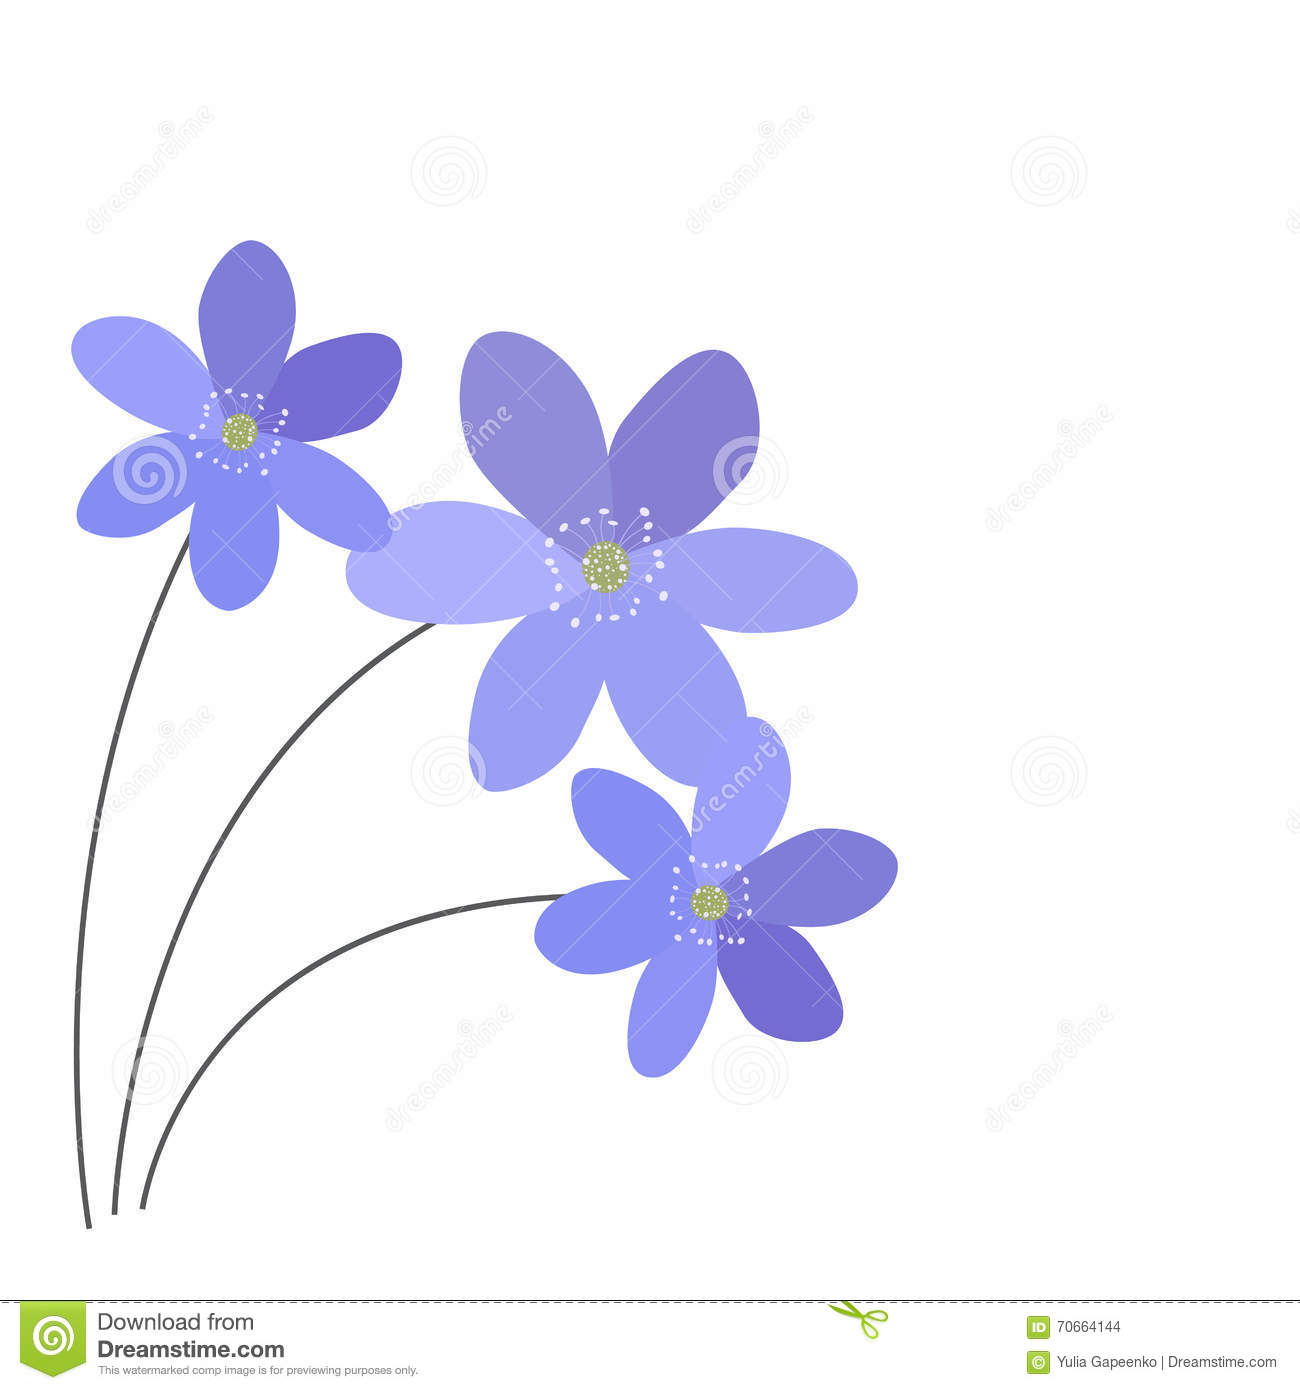 Simple flower pattern background - photo#20